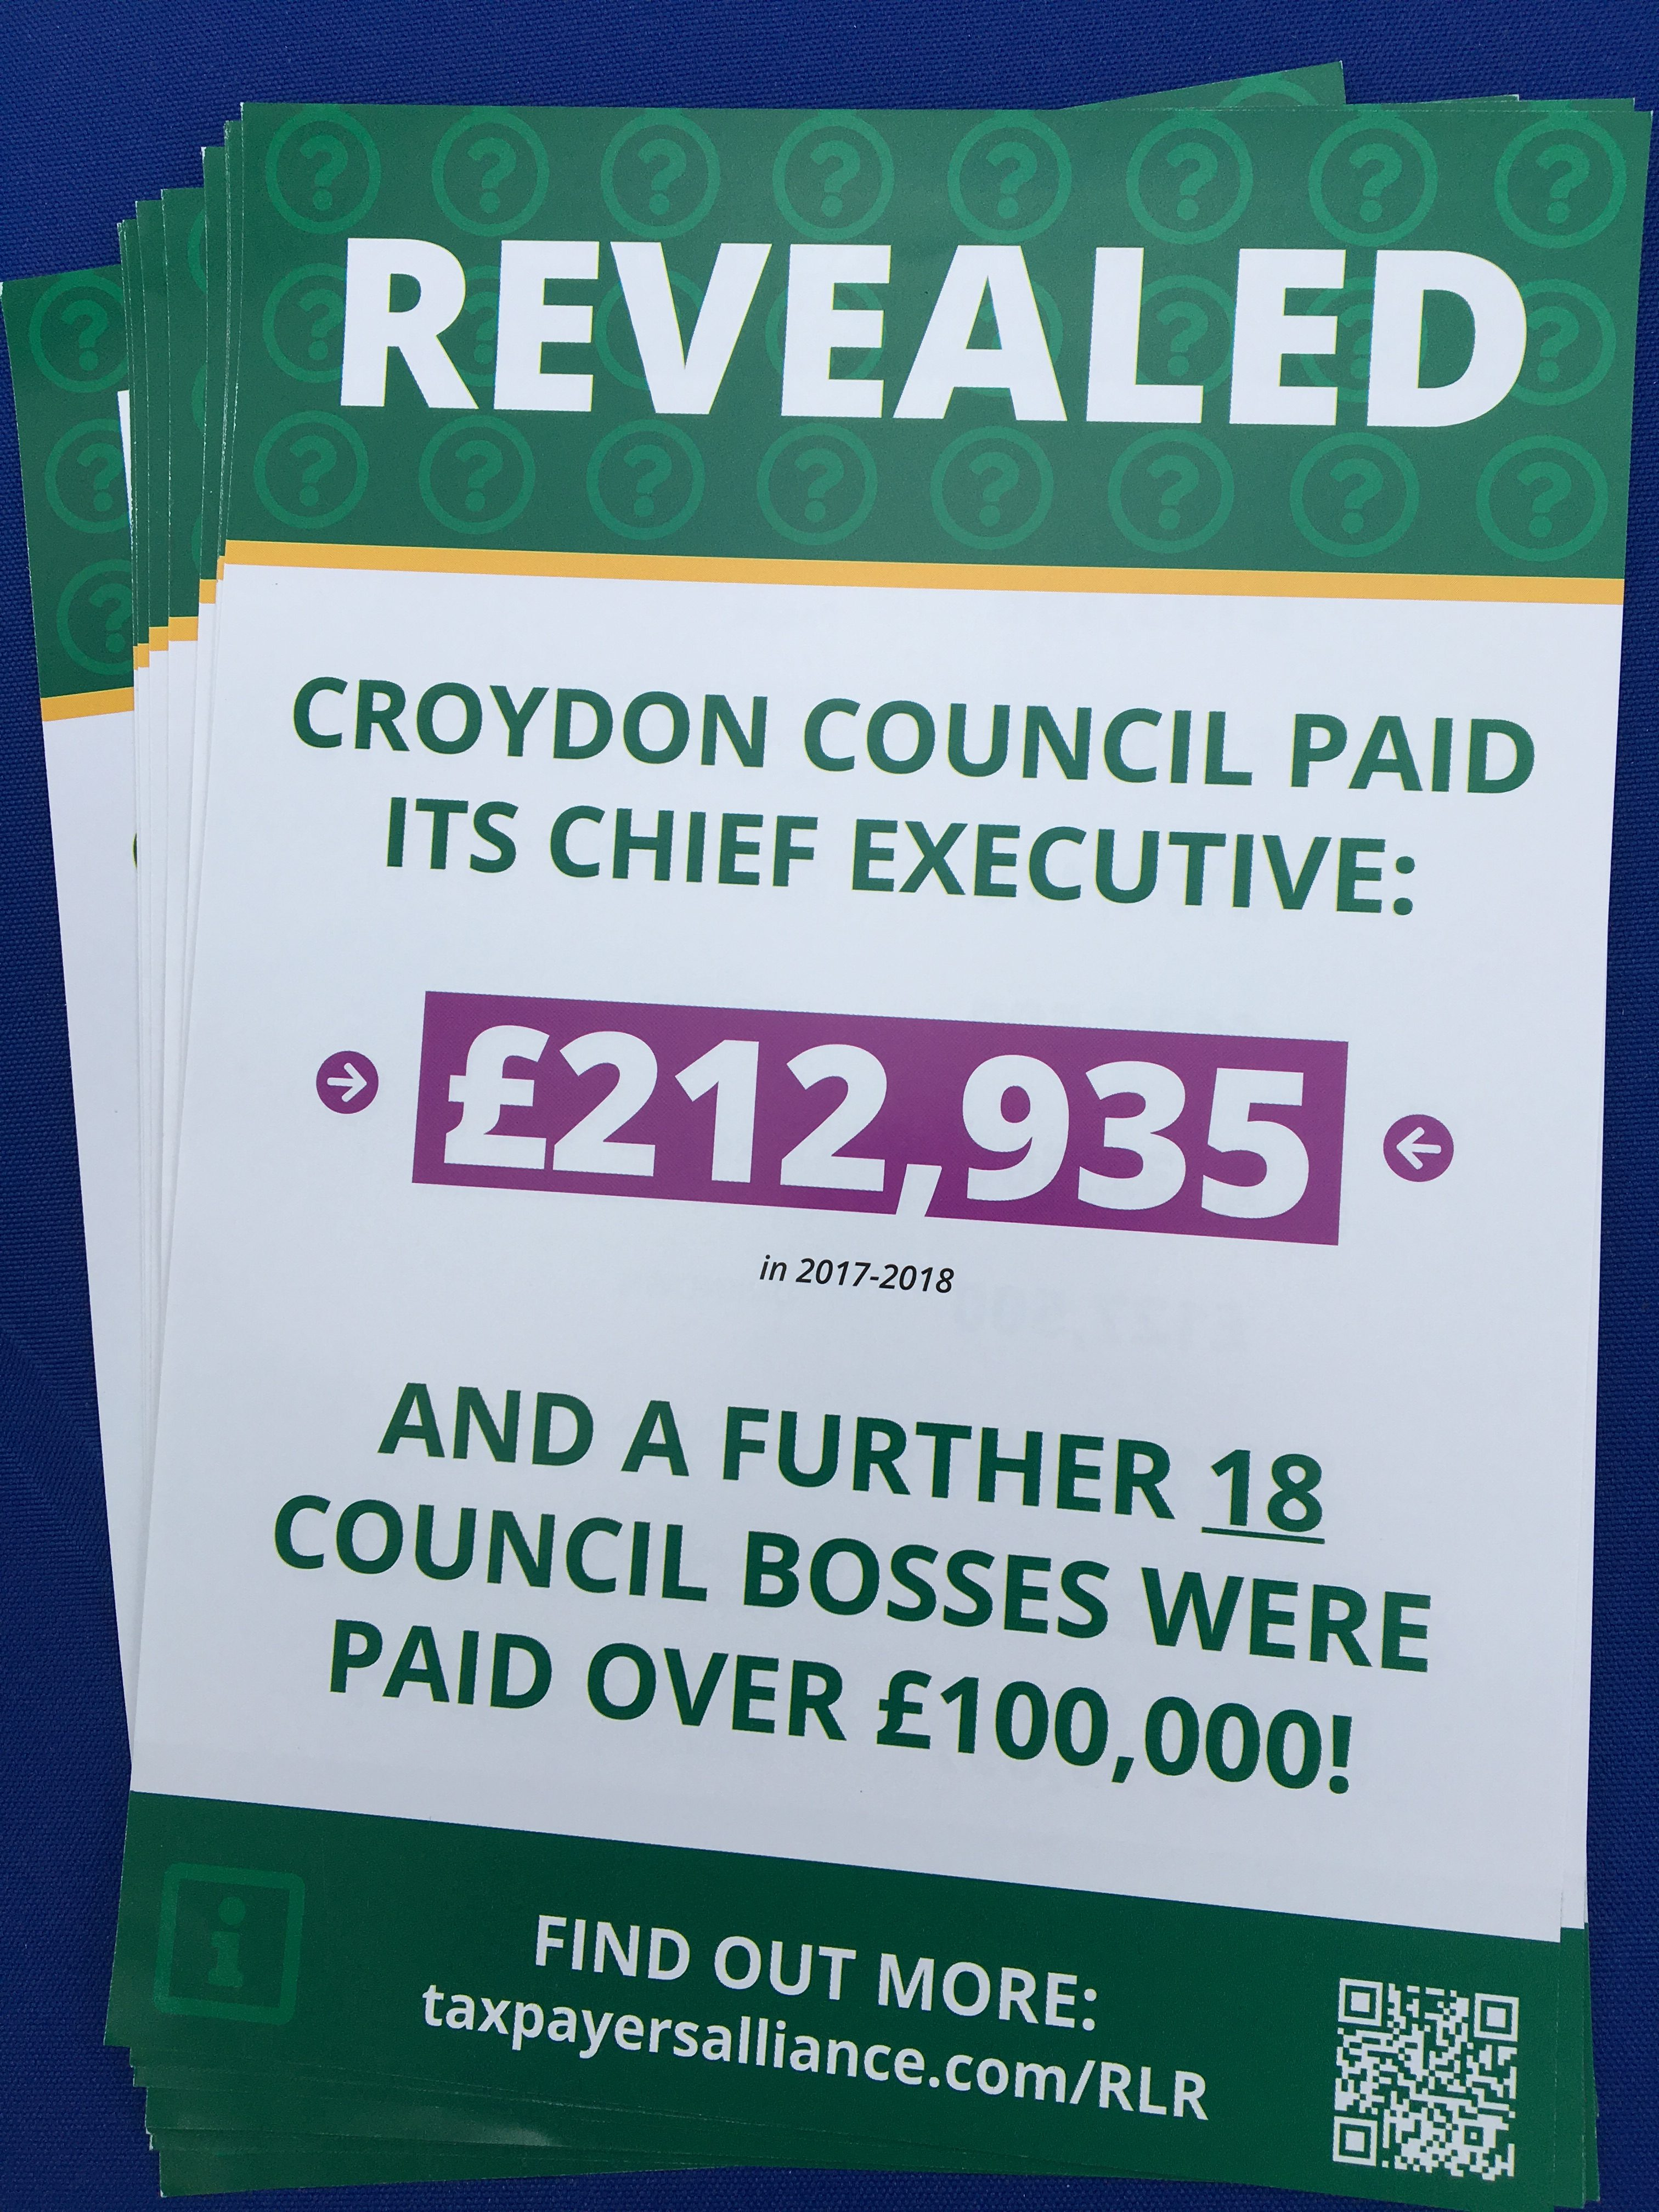 Press Release – CROYDON CONSTITUTIONALISTS TEAM UP WITH TAXPAYERS' ALLIANCE TO SHINE A LIGHT ON WASTEFUL COUNCIL SPENDING